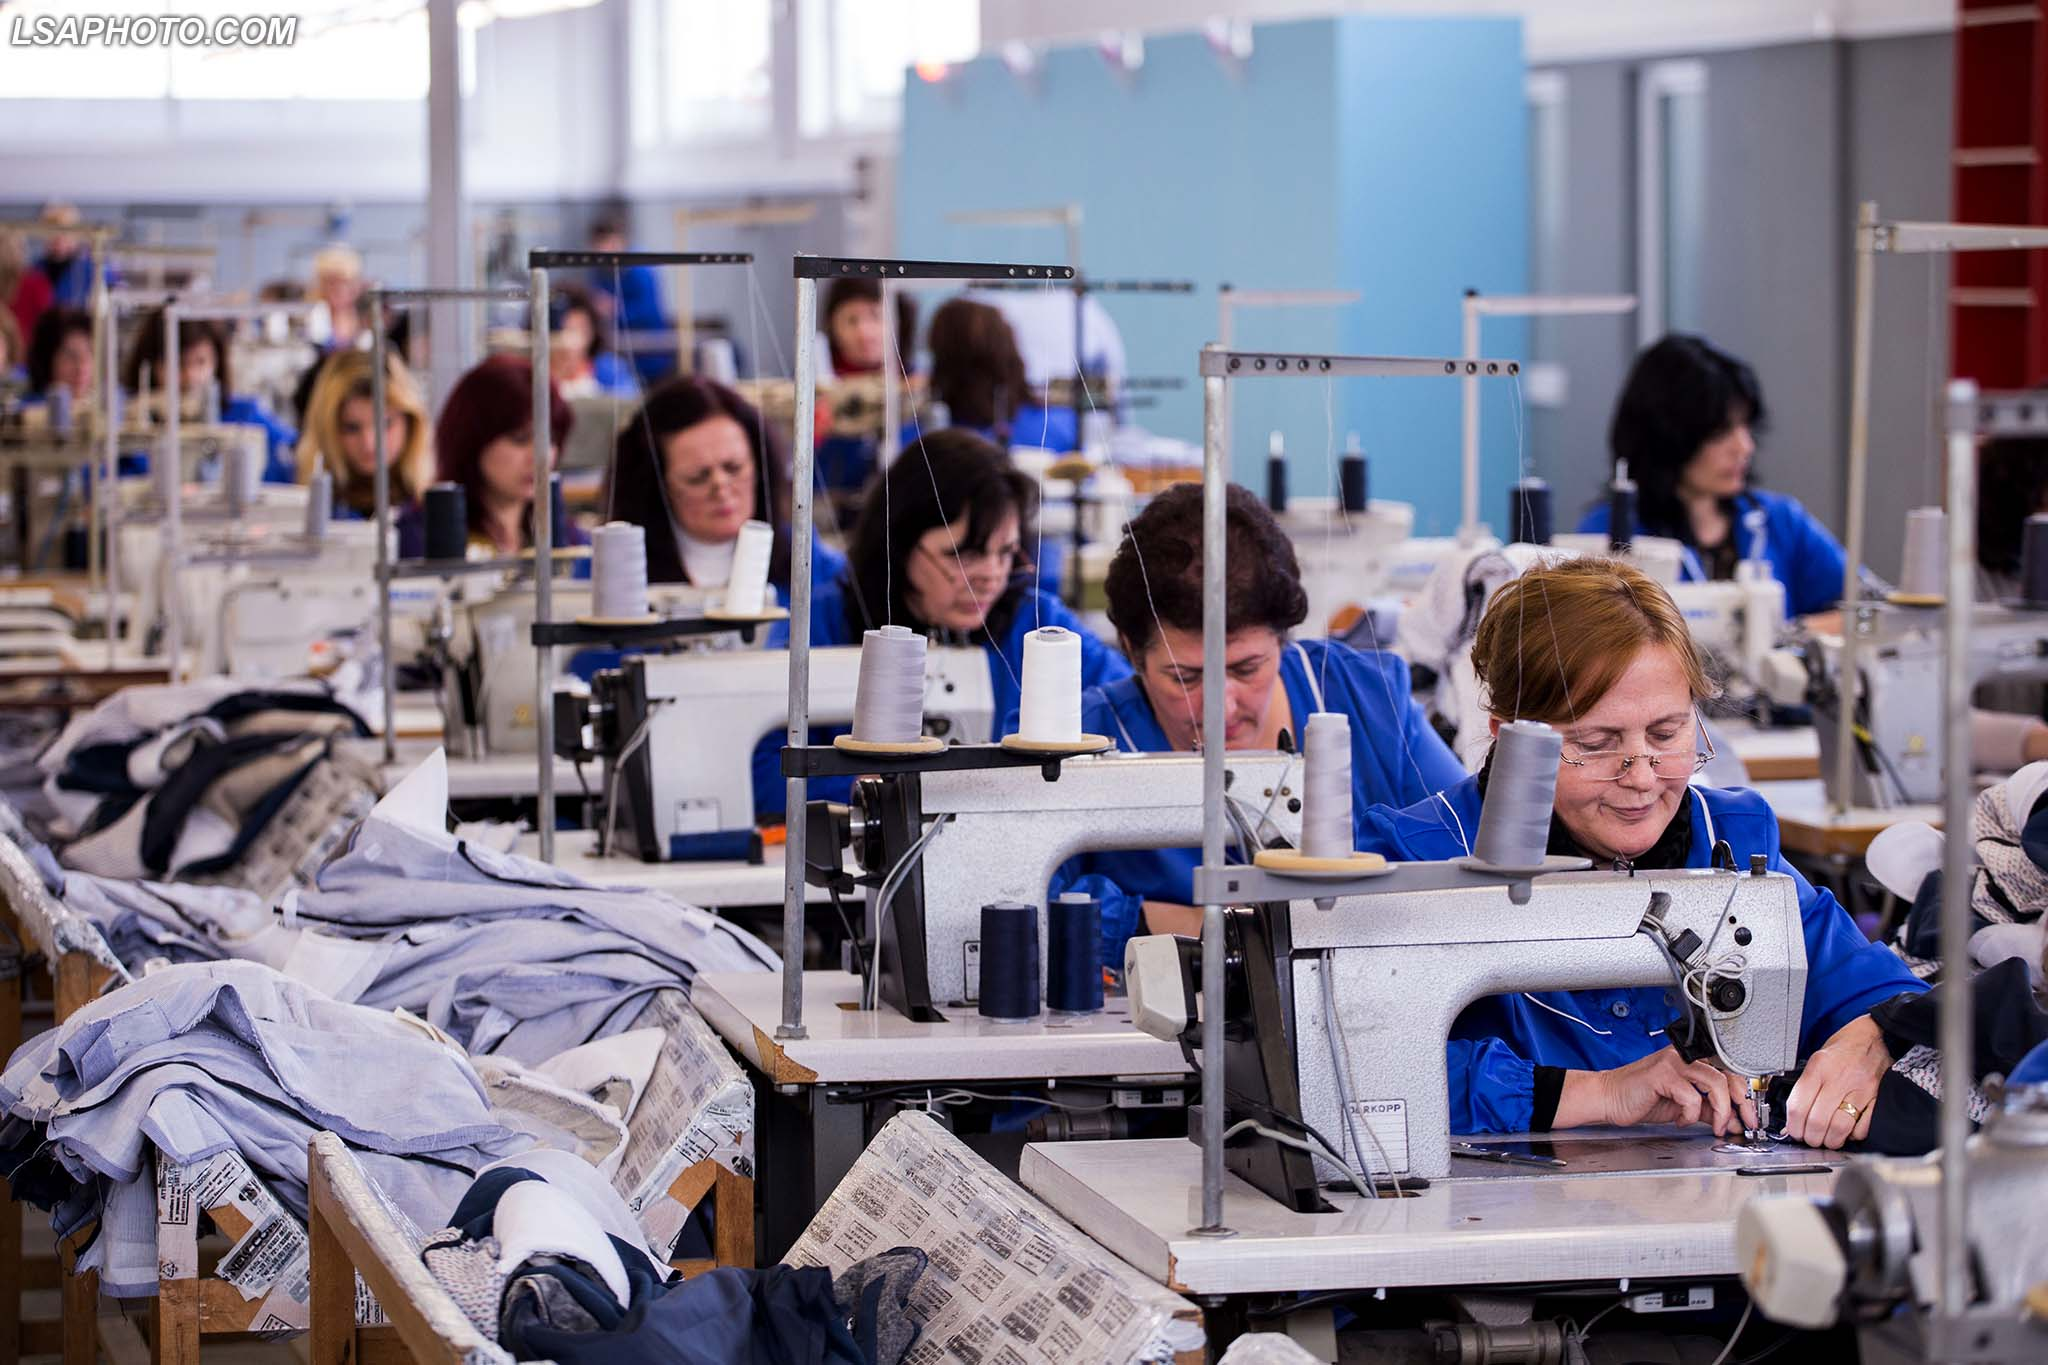 Albanian businesses: The government should help the manufacturing sector